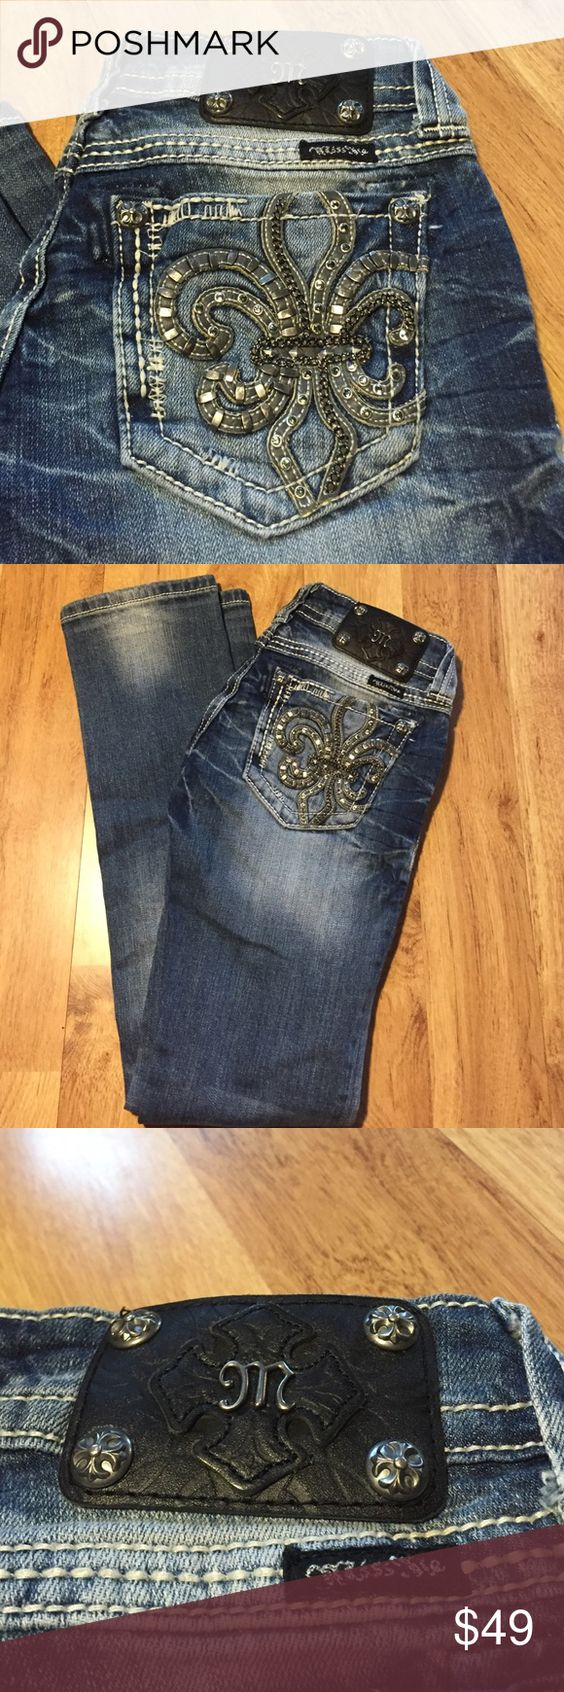 Miss me jeans size 25 straight leg✨ Miss me jeans size 25 straight leg✨excellent condition . All bling intact!! Miss Me Jeans Straight Leg